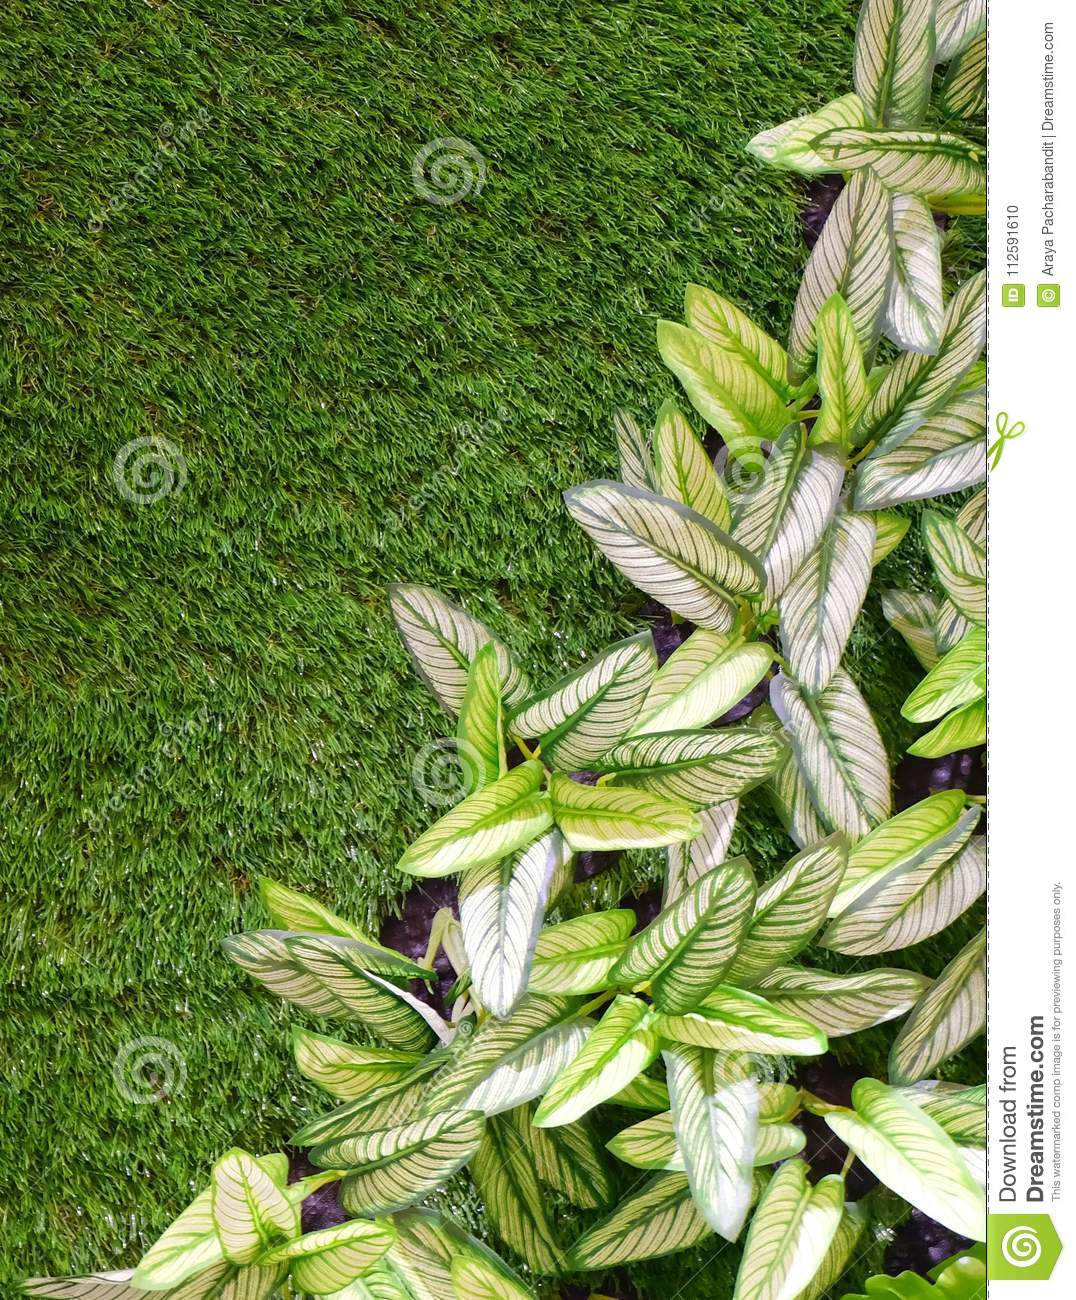 Artificial Dumb Cane or Dieffenbachia Plants on Green Grass